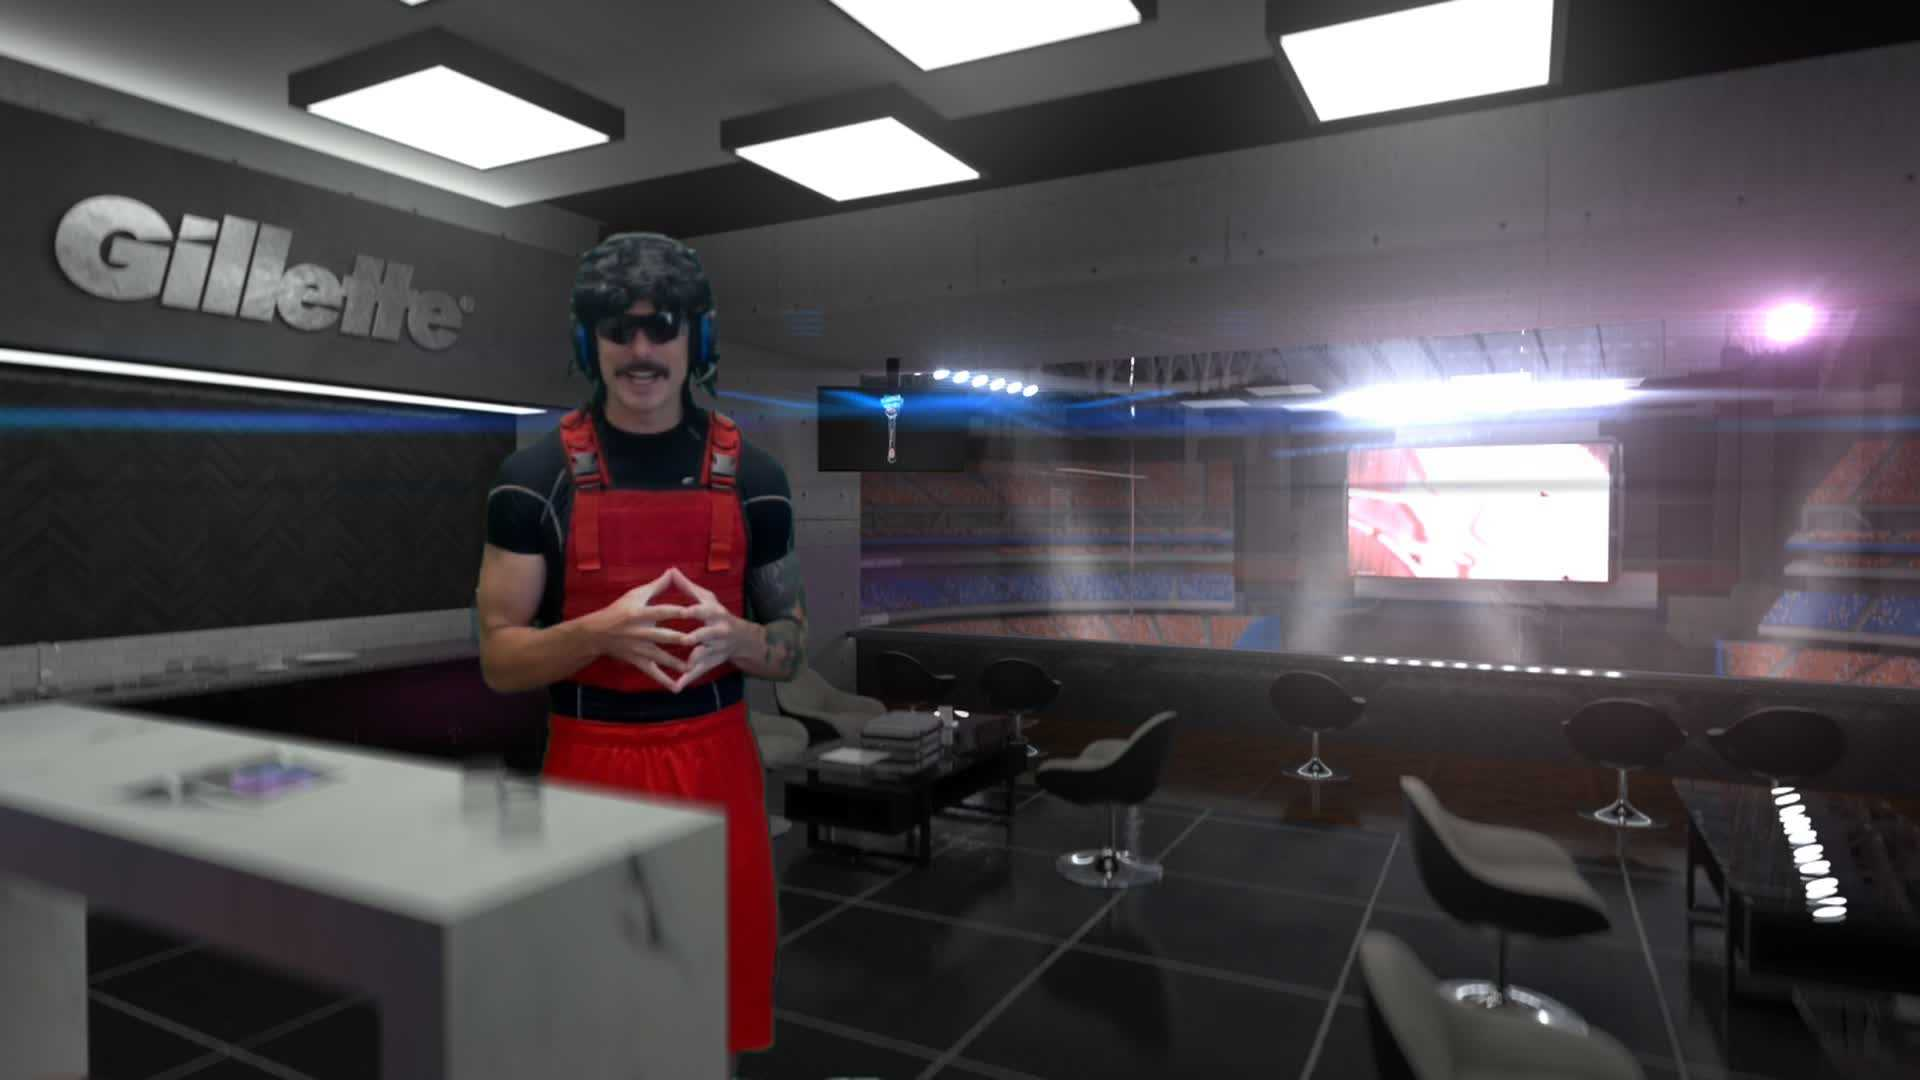 DR Disrespect/ twitch